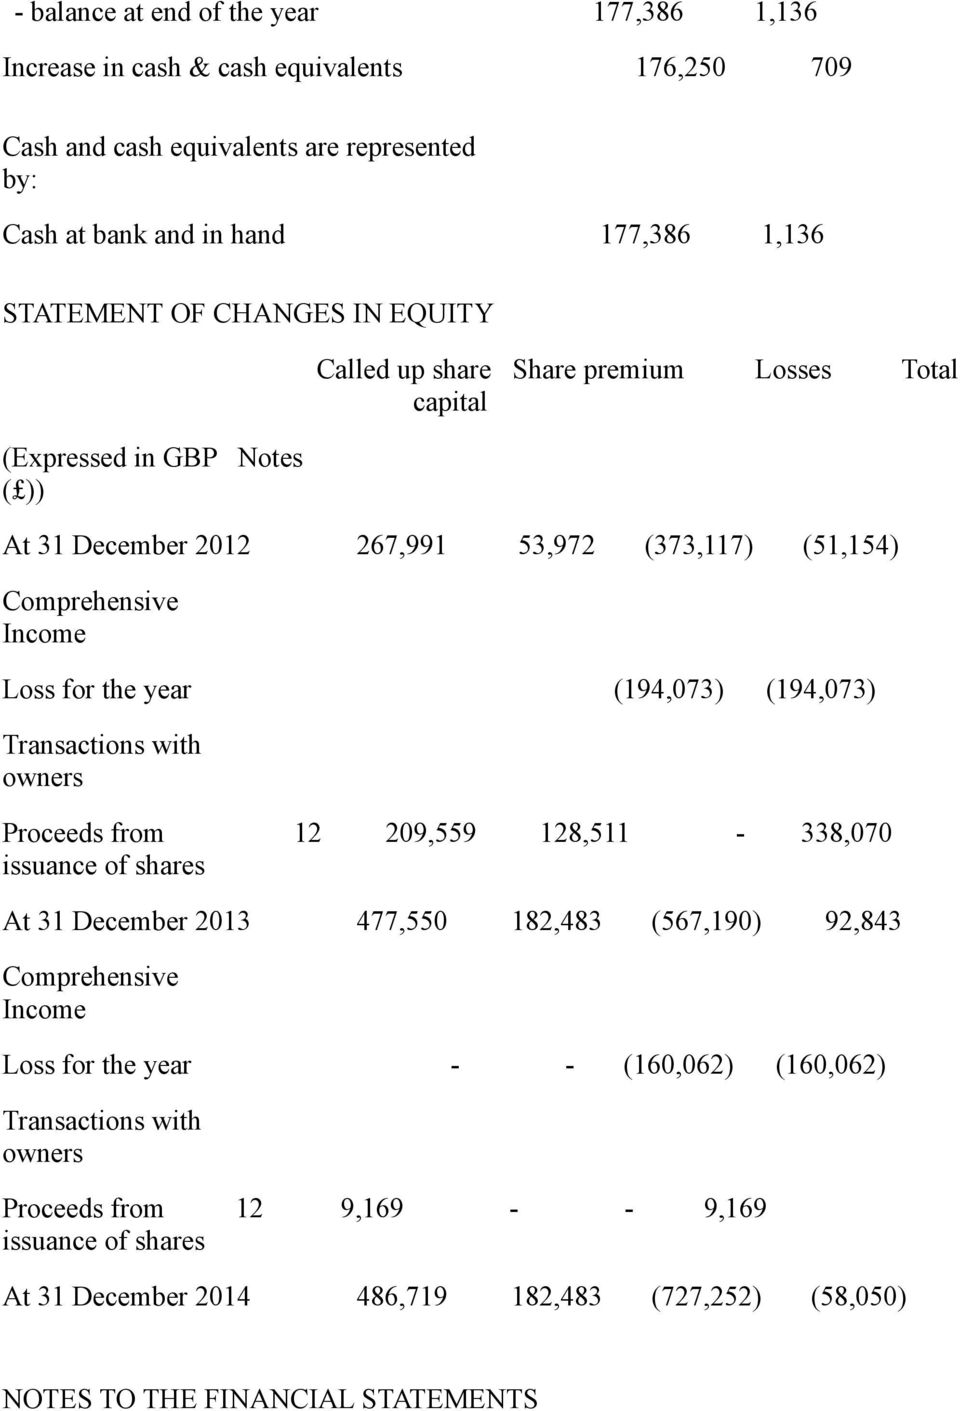 (194,073) (194,073) Transactions with owners Proceeds from 12 209,559 128,511-338,070 issuance of shares At 31 December 2013 477,550 182,483 (567,190) 92,843 Comprehensive Income Loss for the